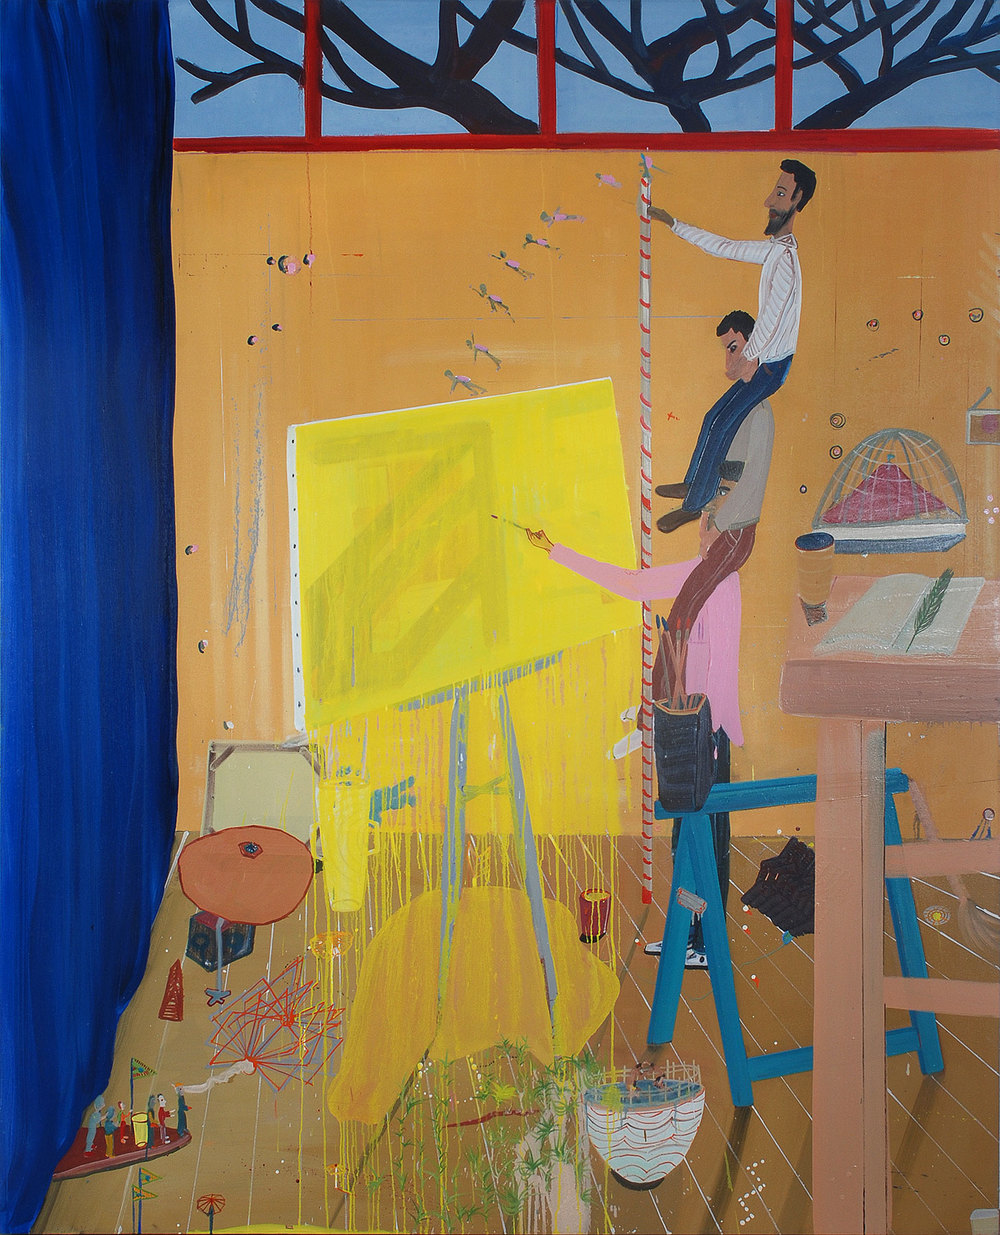 History Upon Me, 2009 Oil on canvas, 221x182 cm